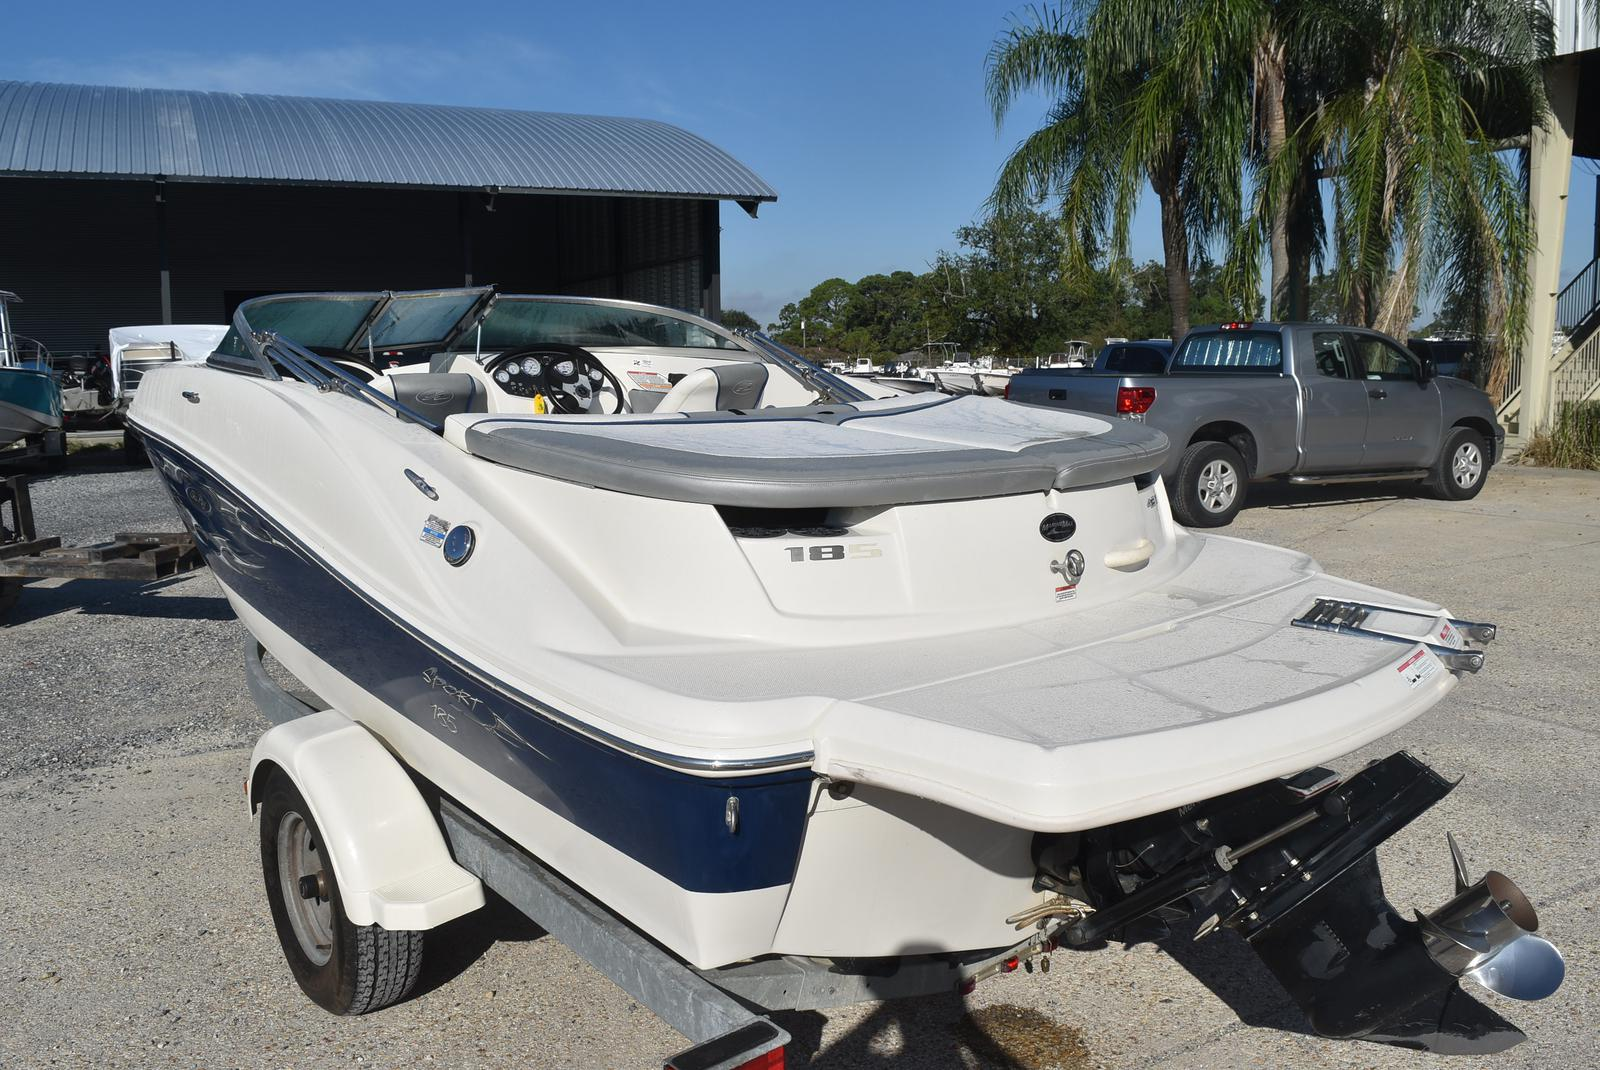 2008 Sea Ray boat for sale, model of the boat is 185 & Image # 7 of 9